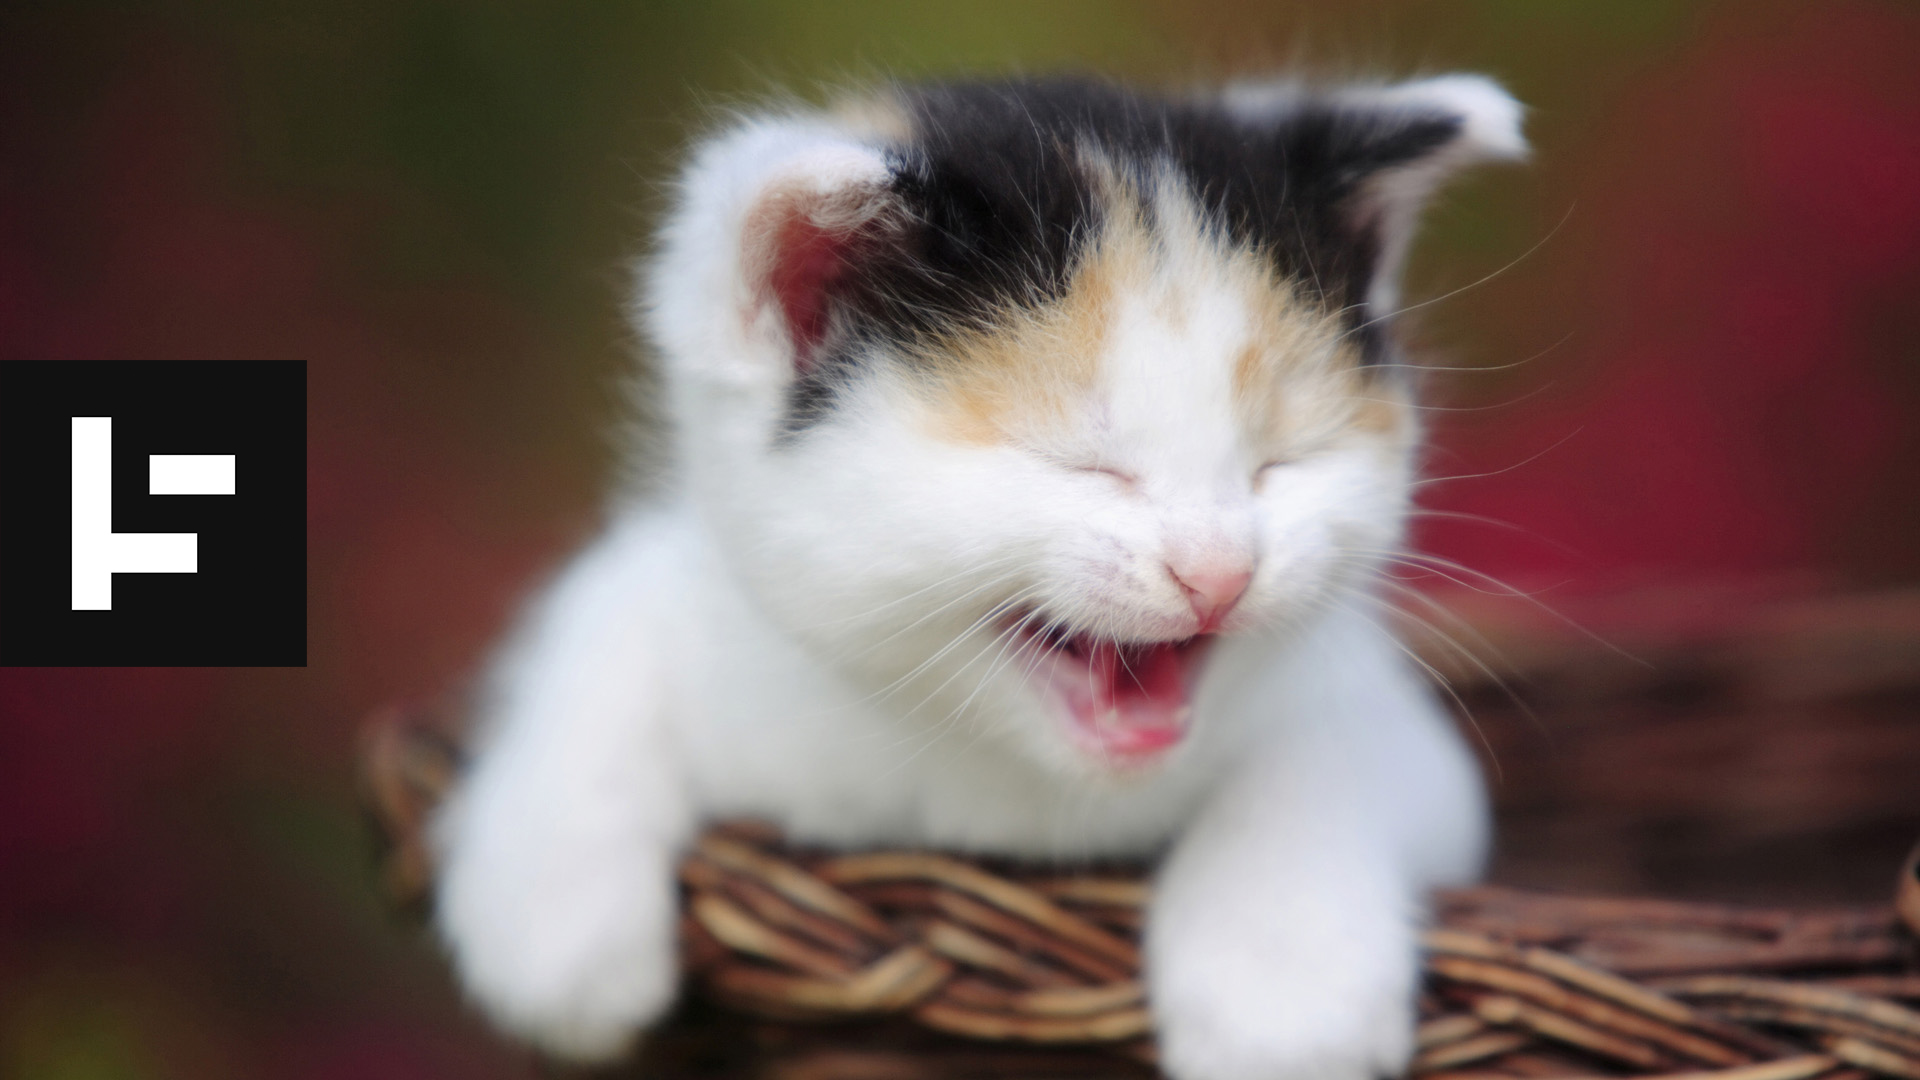 This Is Why Funny Cat Videos Are Good For You - INSH Funny Cat Videos Episodes